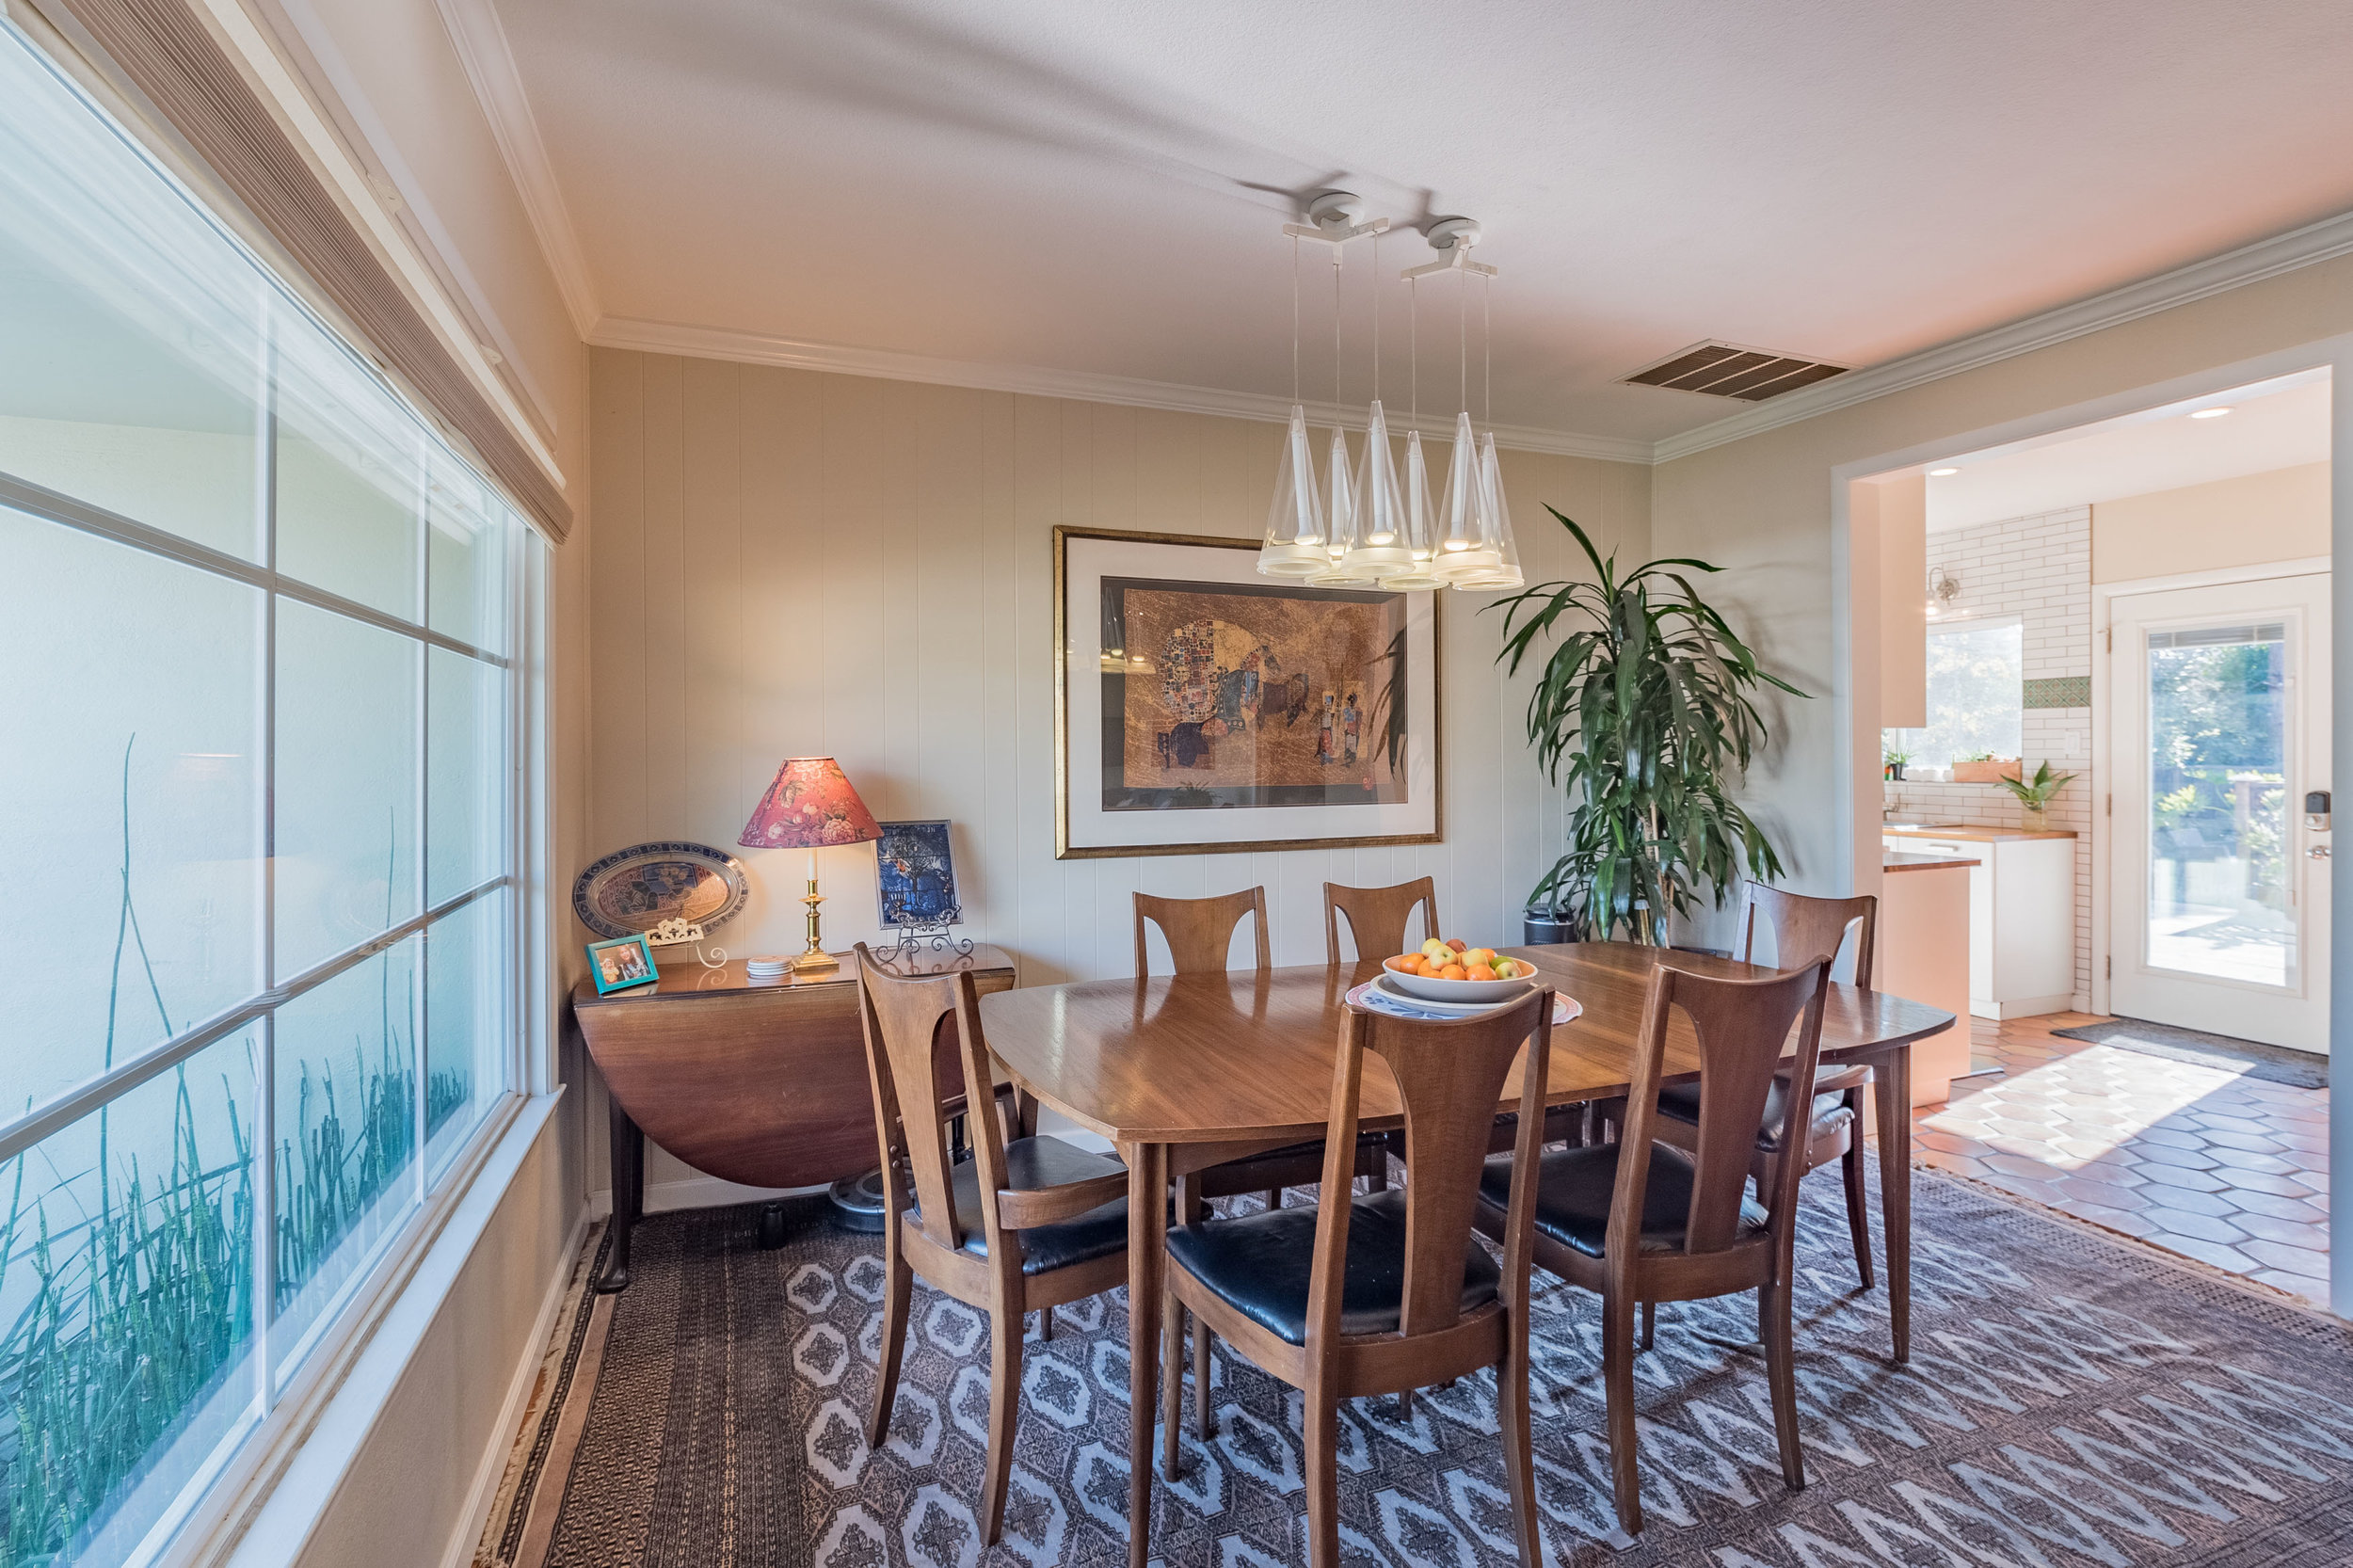 Dining Room with Natural Light